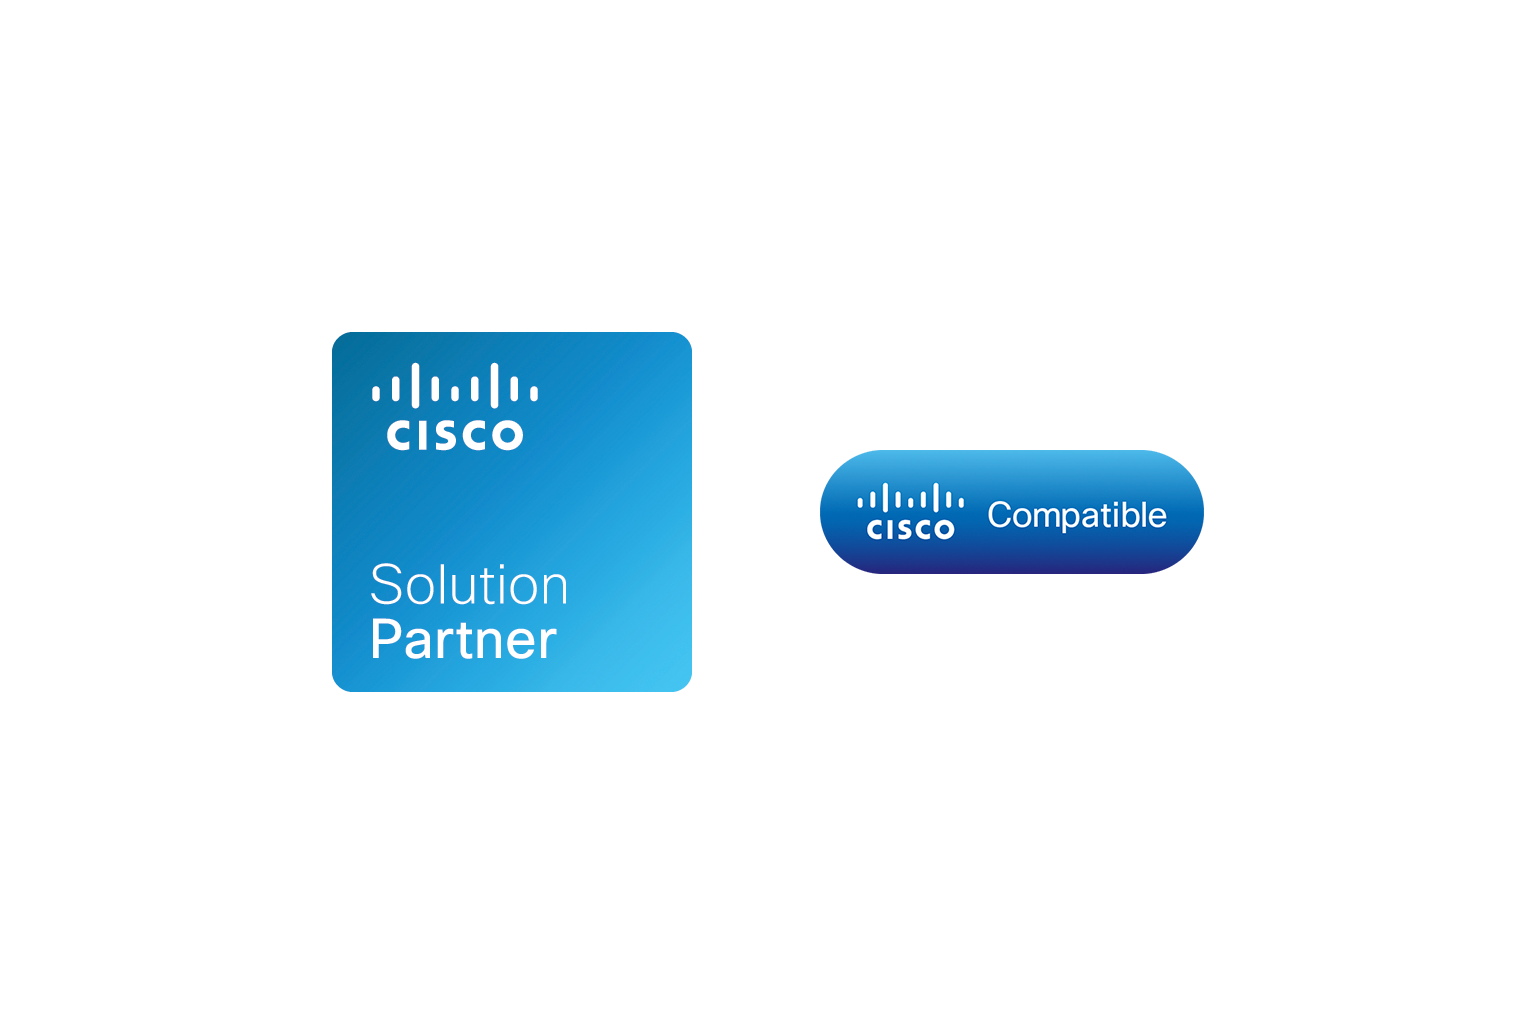 Cisco Compatible